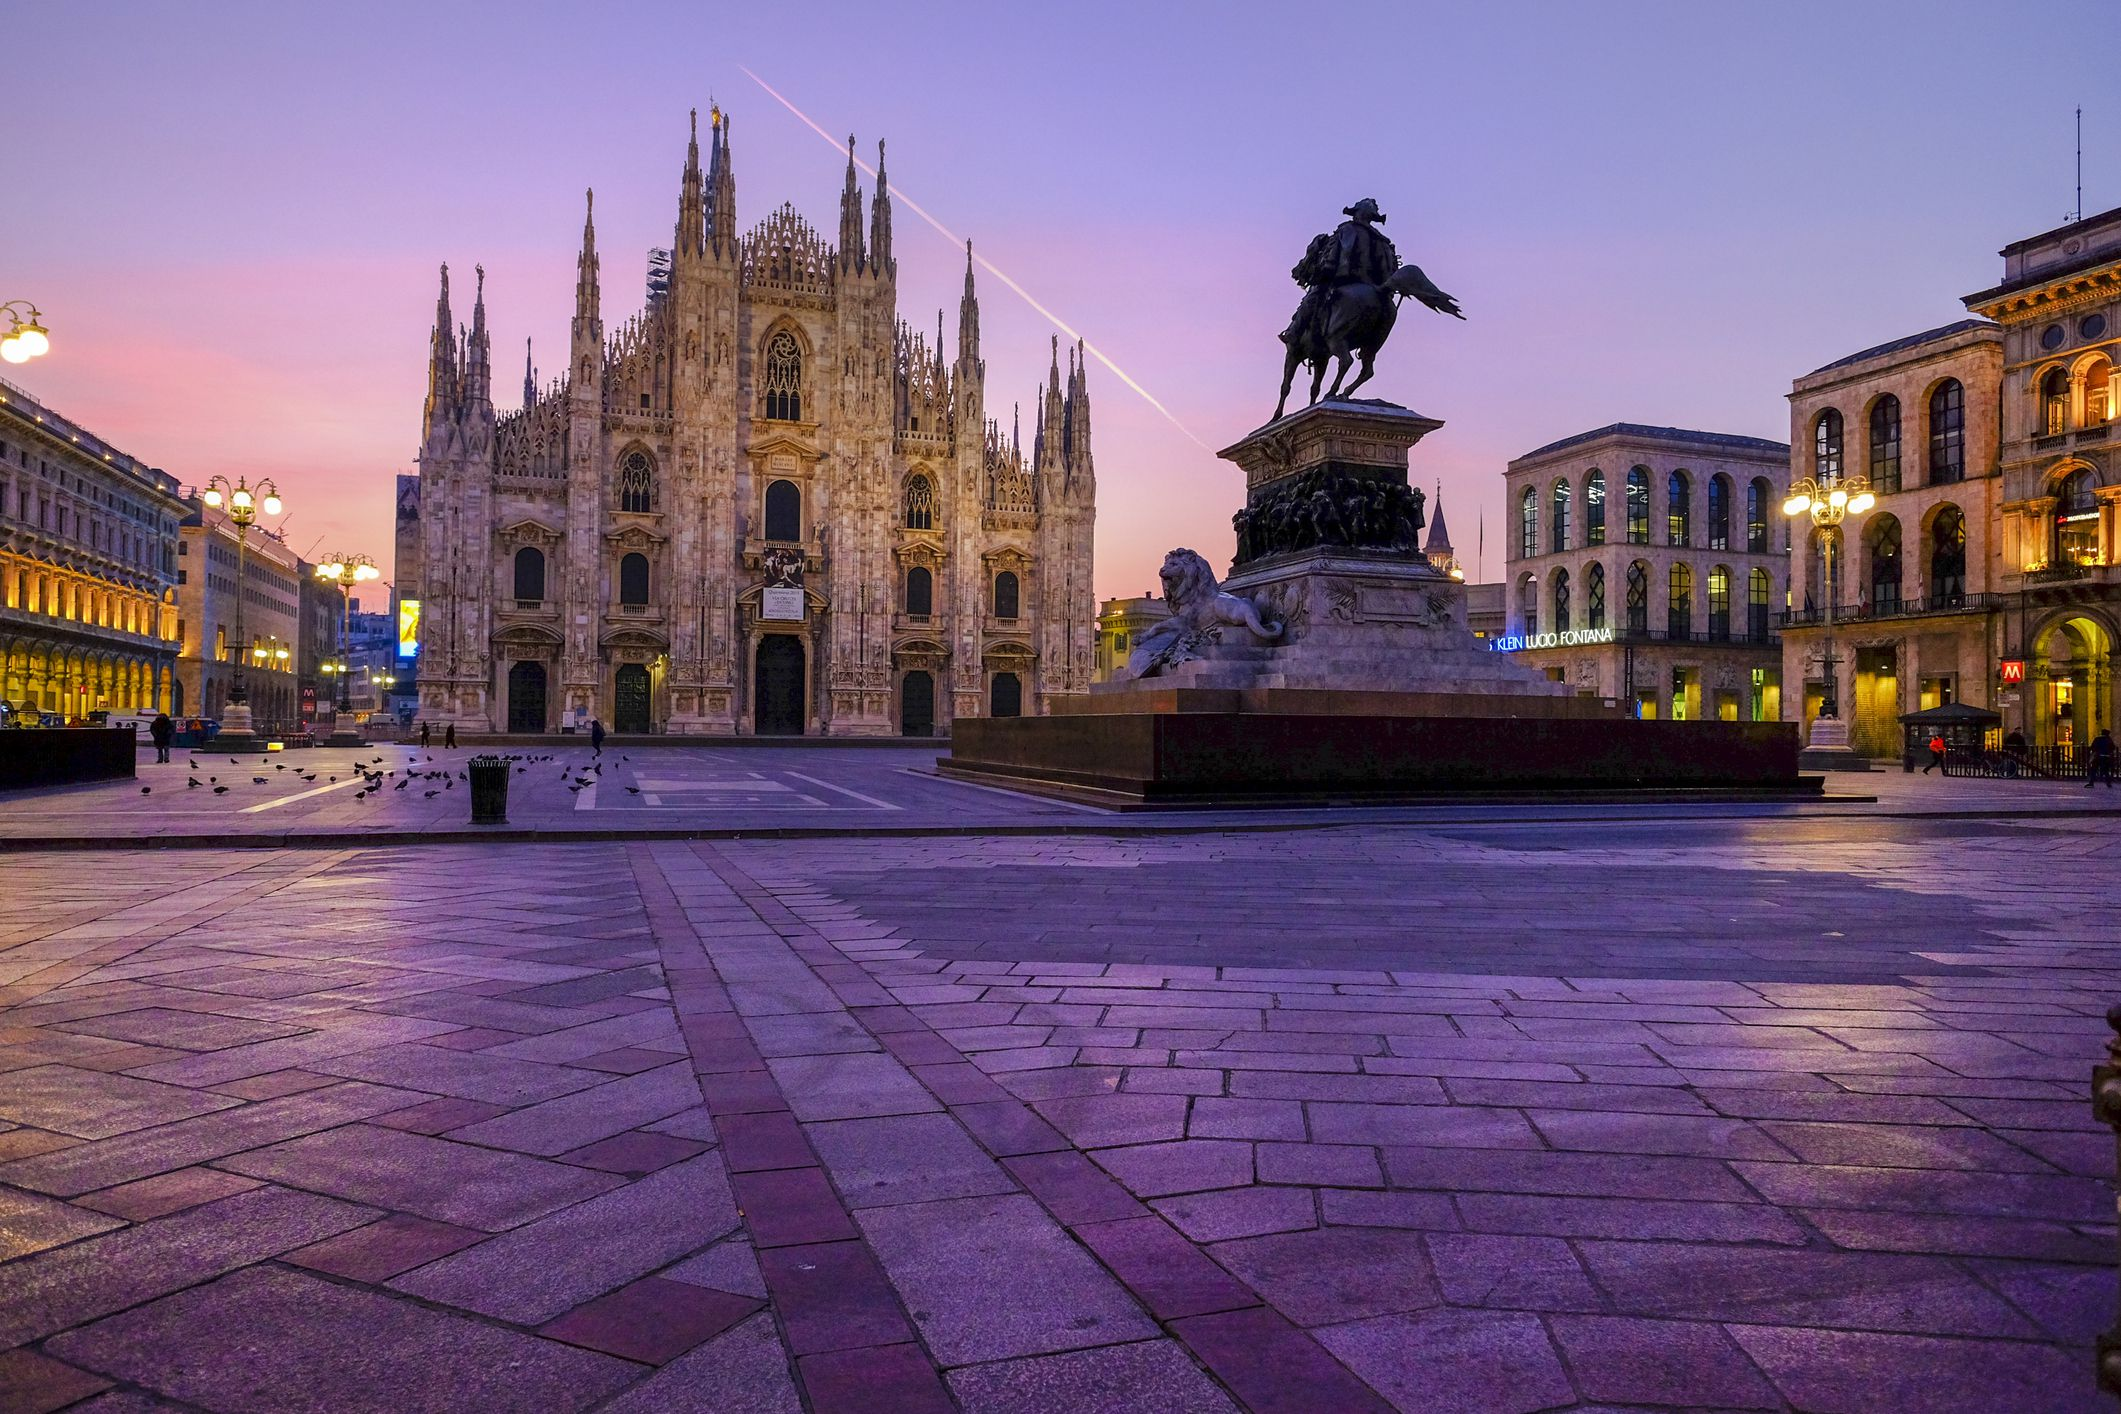 The Reasons Why Milan Italy Should Be On Your Bucket List Next Month 7 milan italy The Reasons Why Milan Italy Should Be On Your Bucket List Next Month The Reasons Why Milan Italy Should Be On Your Bucket List Next Month 7